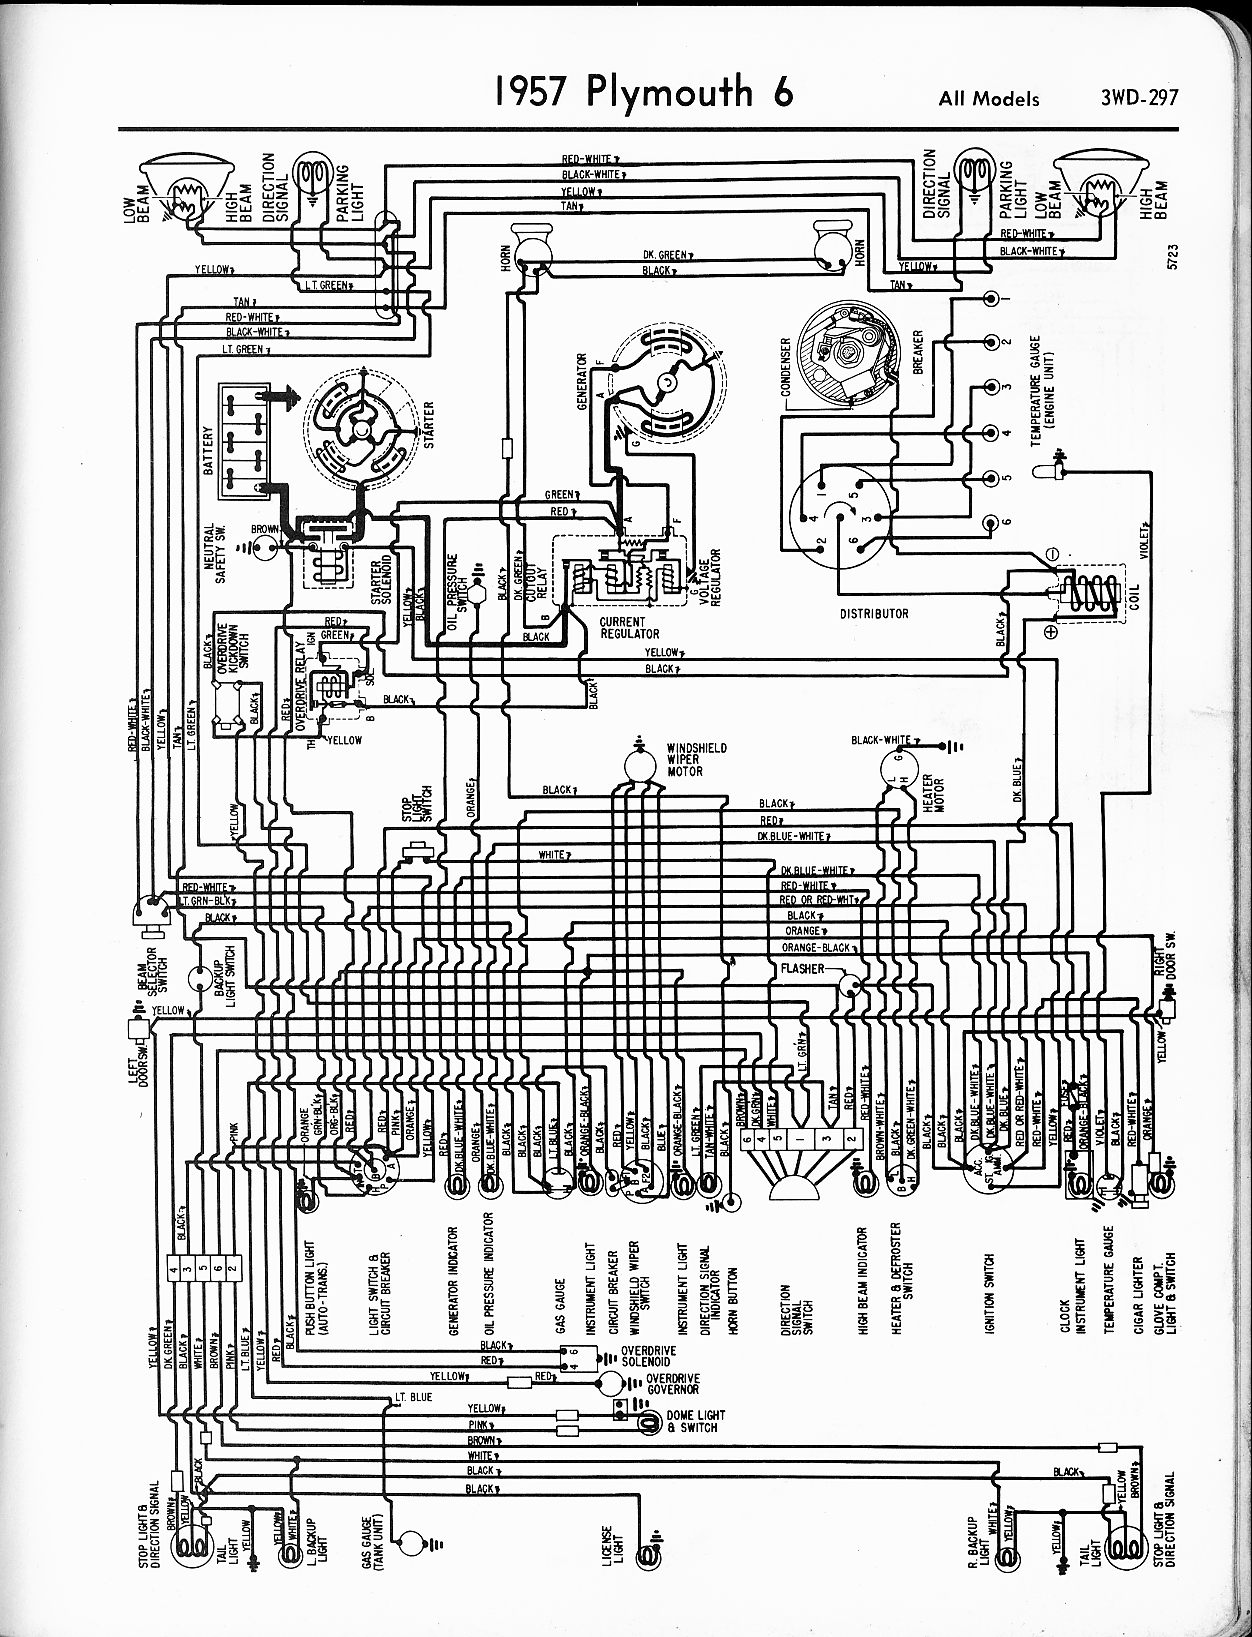 Wiring Diagrams Of 1958 Plymouth V8 All Models Diagram Data Schema